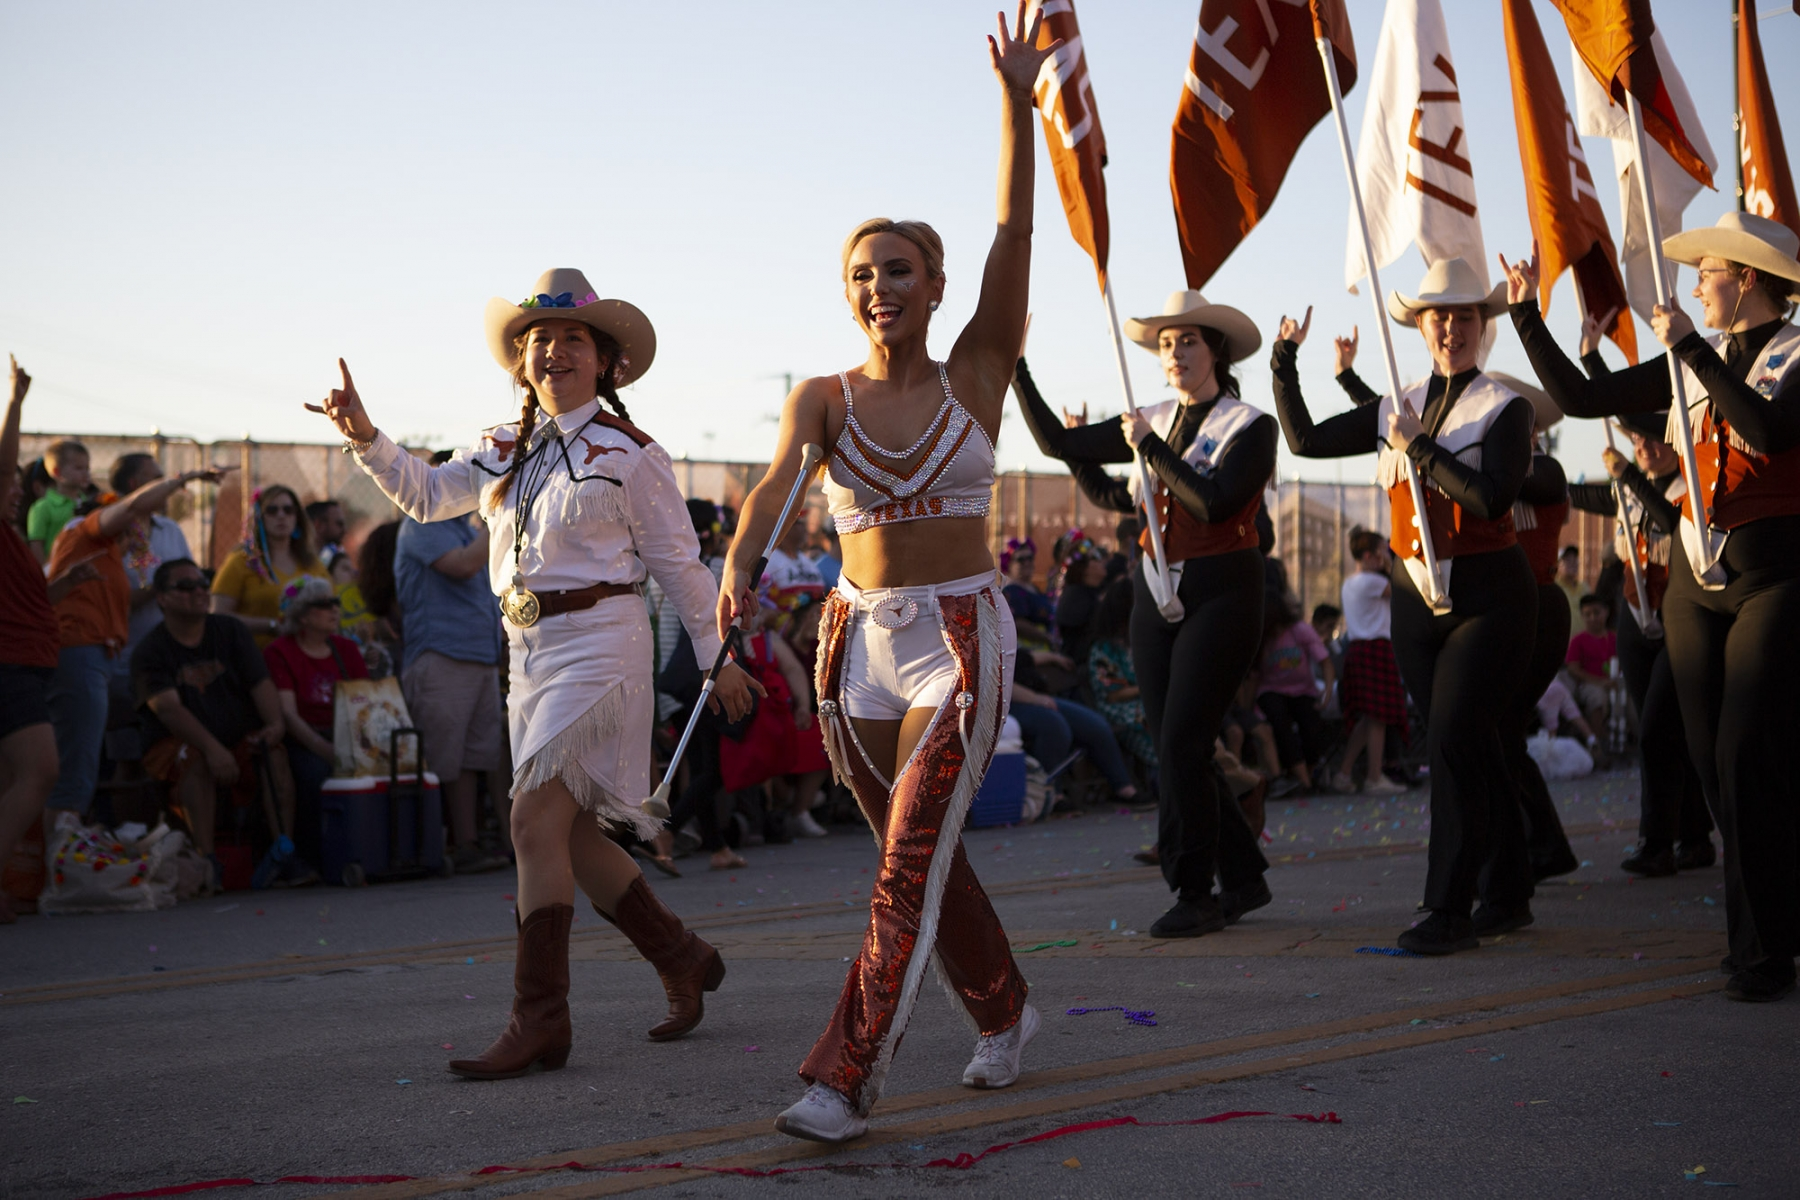 UT's baton twirler leads the Longhorn Band in the Fiesta Flambeau Parade on Saturday, April 27. <em>Photo by Kara Hawley | Heron contributor</em>